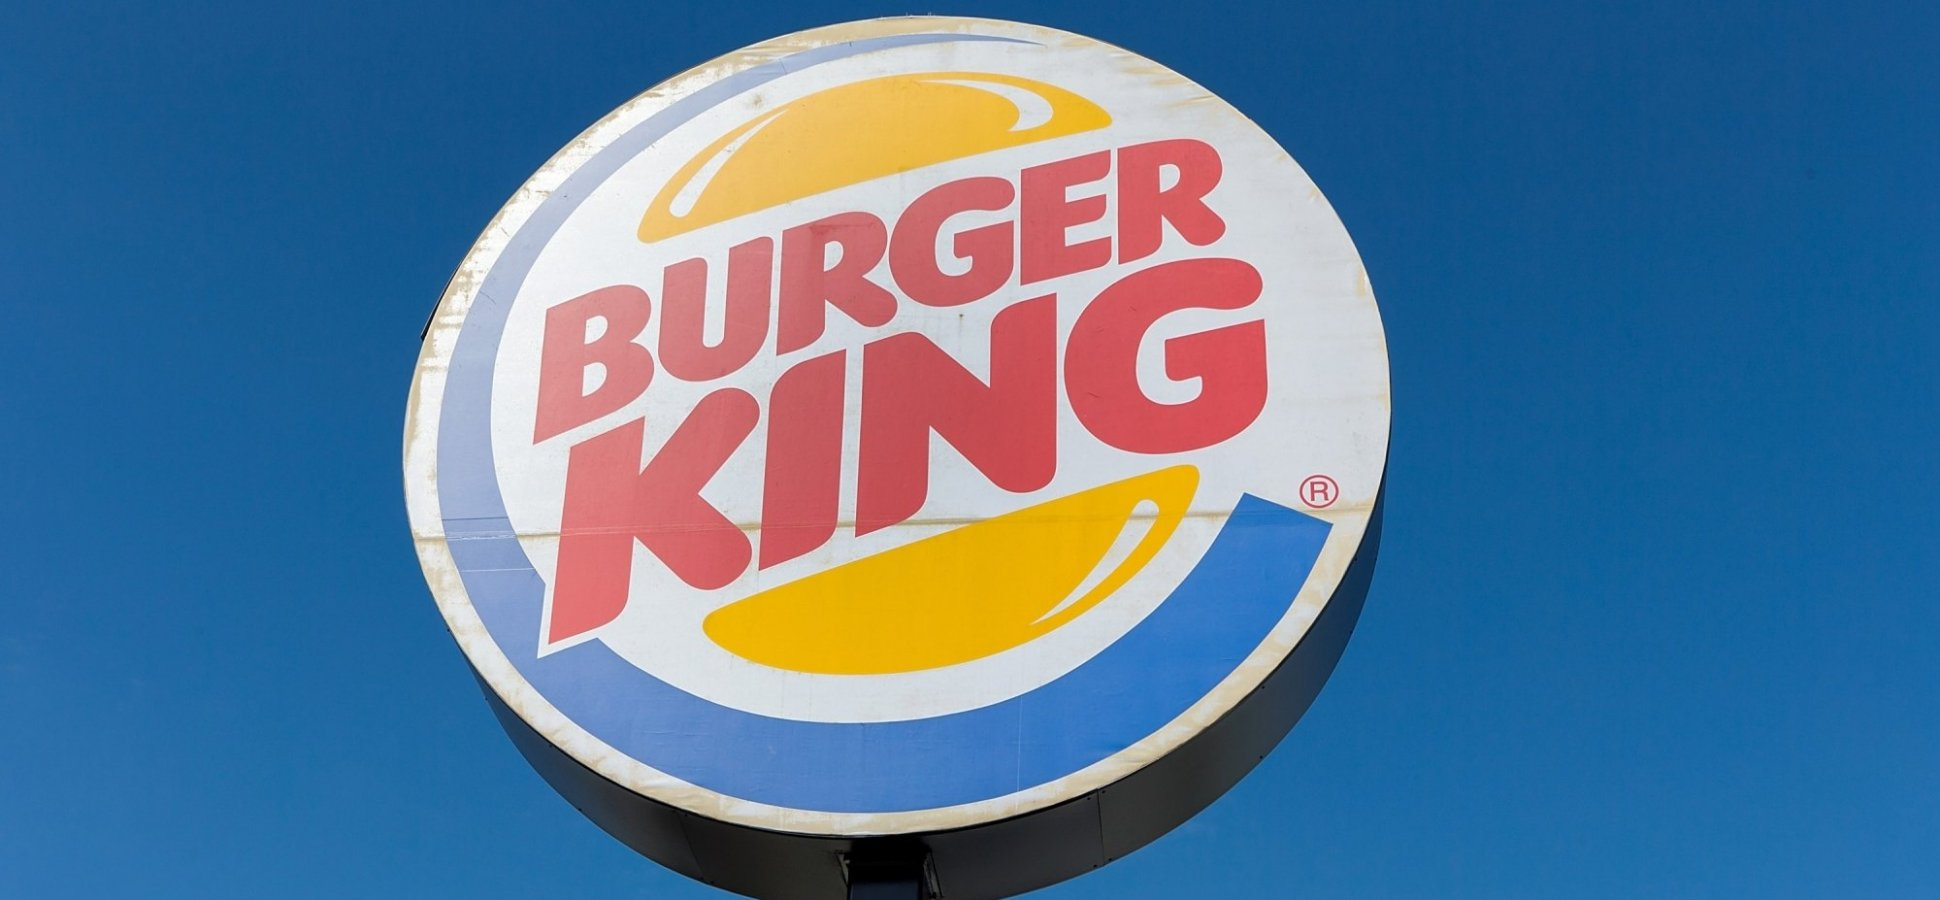 Burger King Just Announced An Amazing Promotion The 1 Cent Whopper